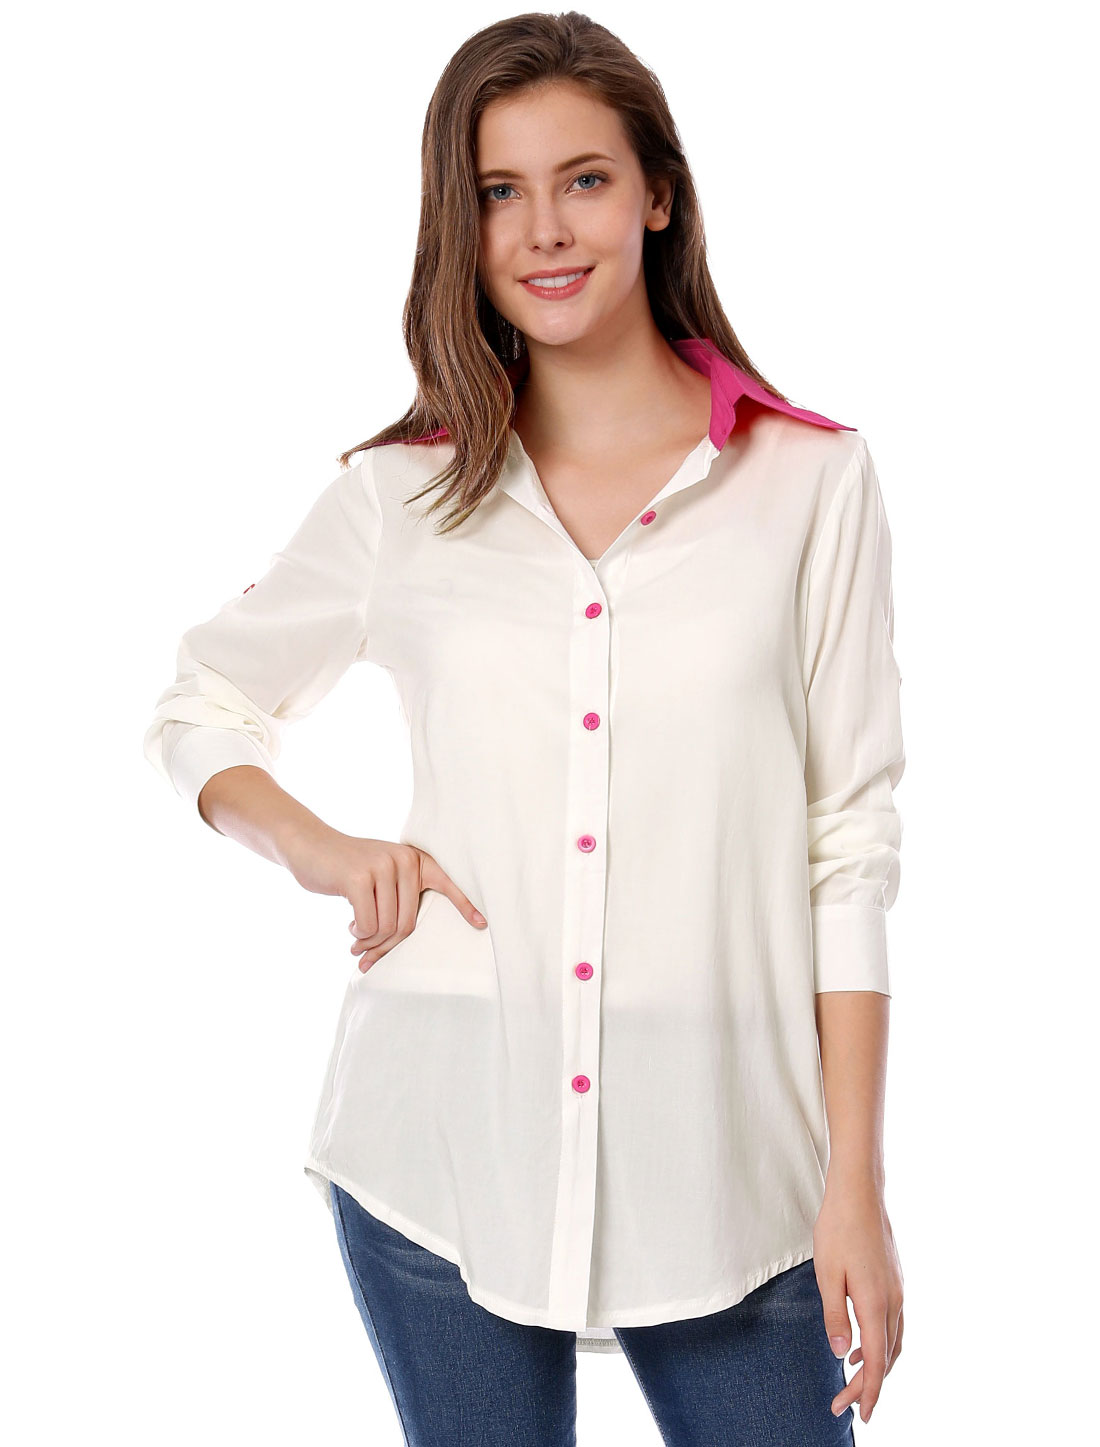 Ladies NEW Style Fuchsia Point Collar Long-Sleeved White Blouse L